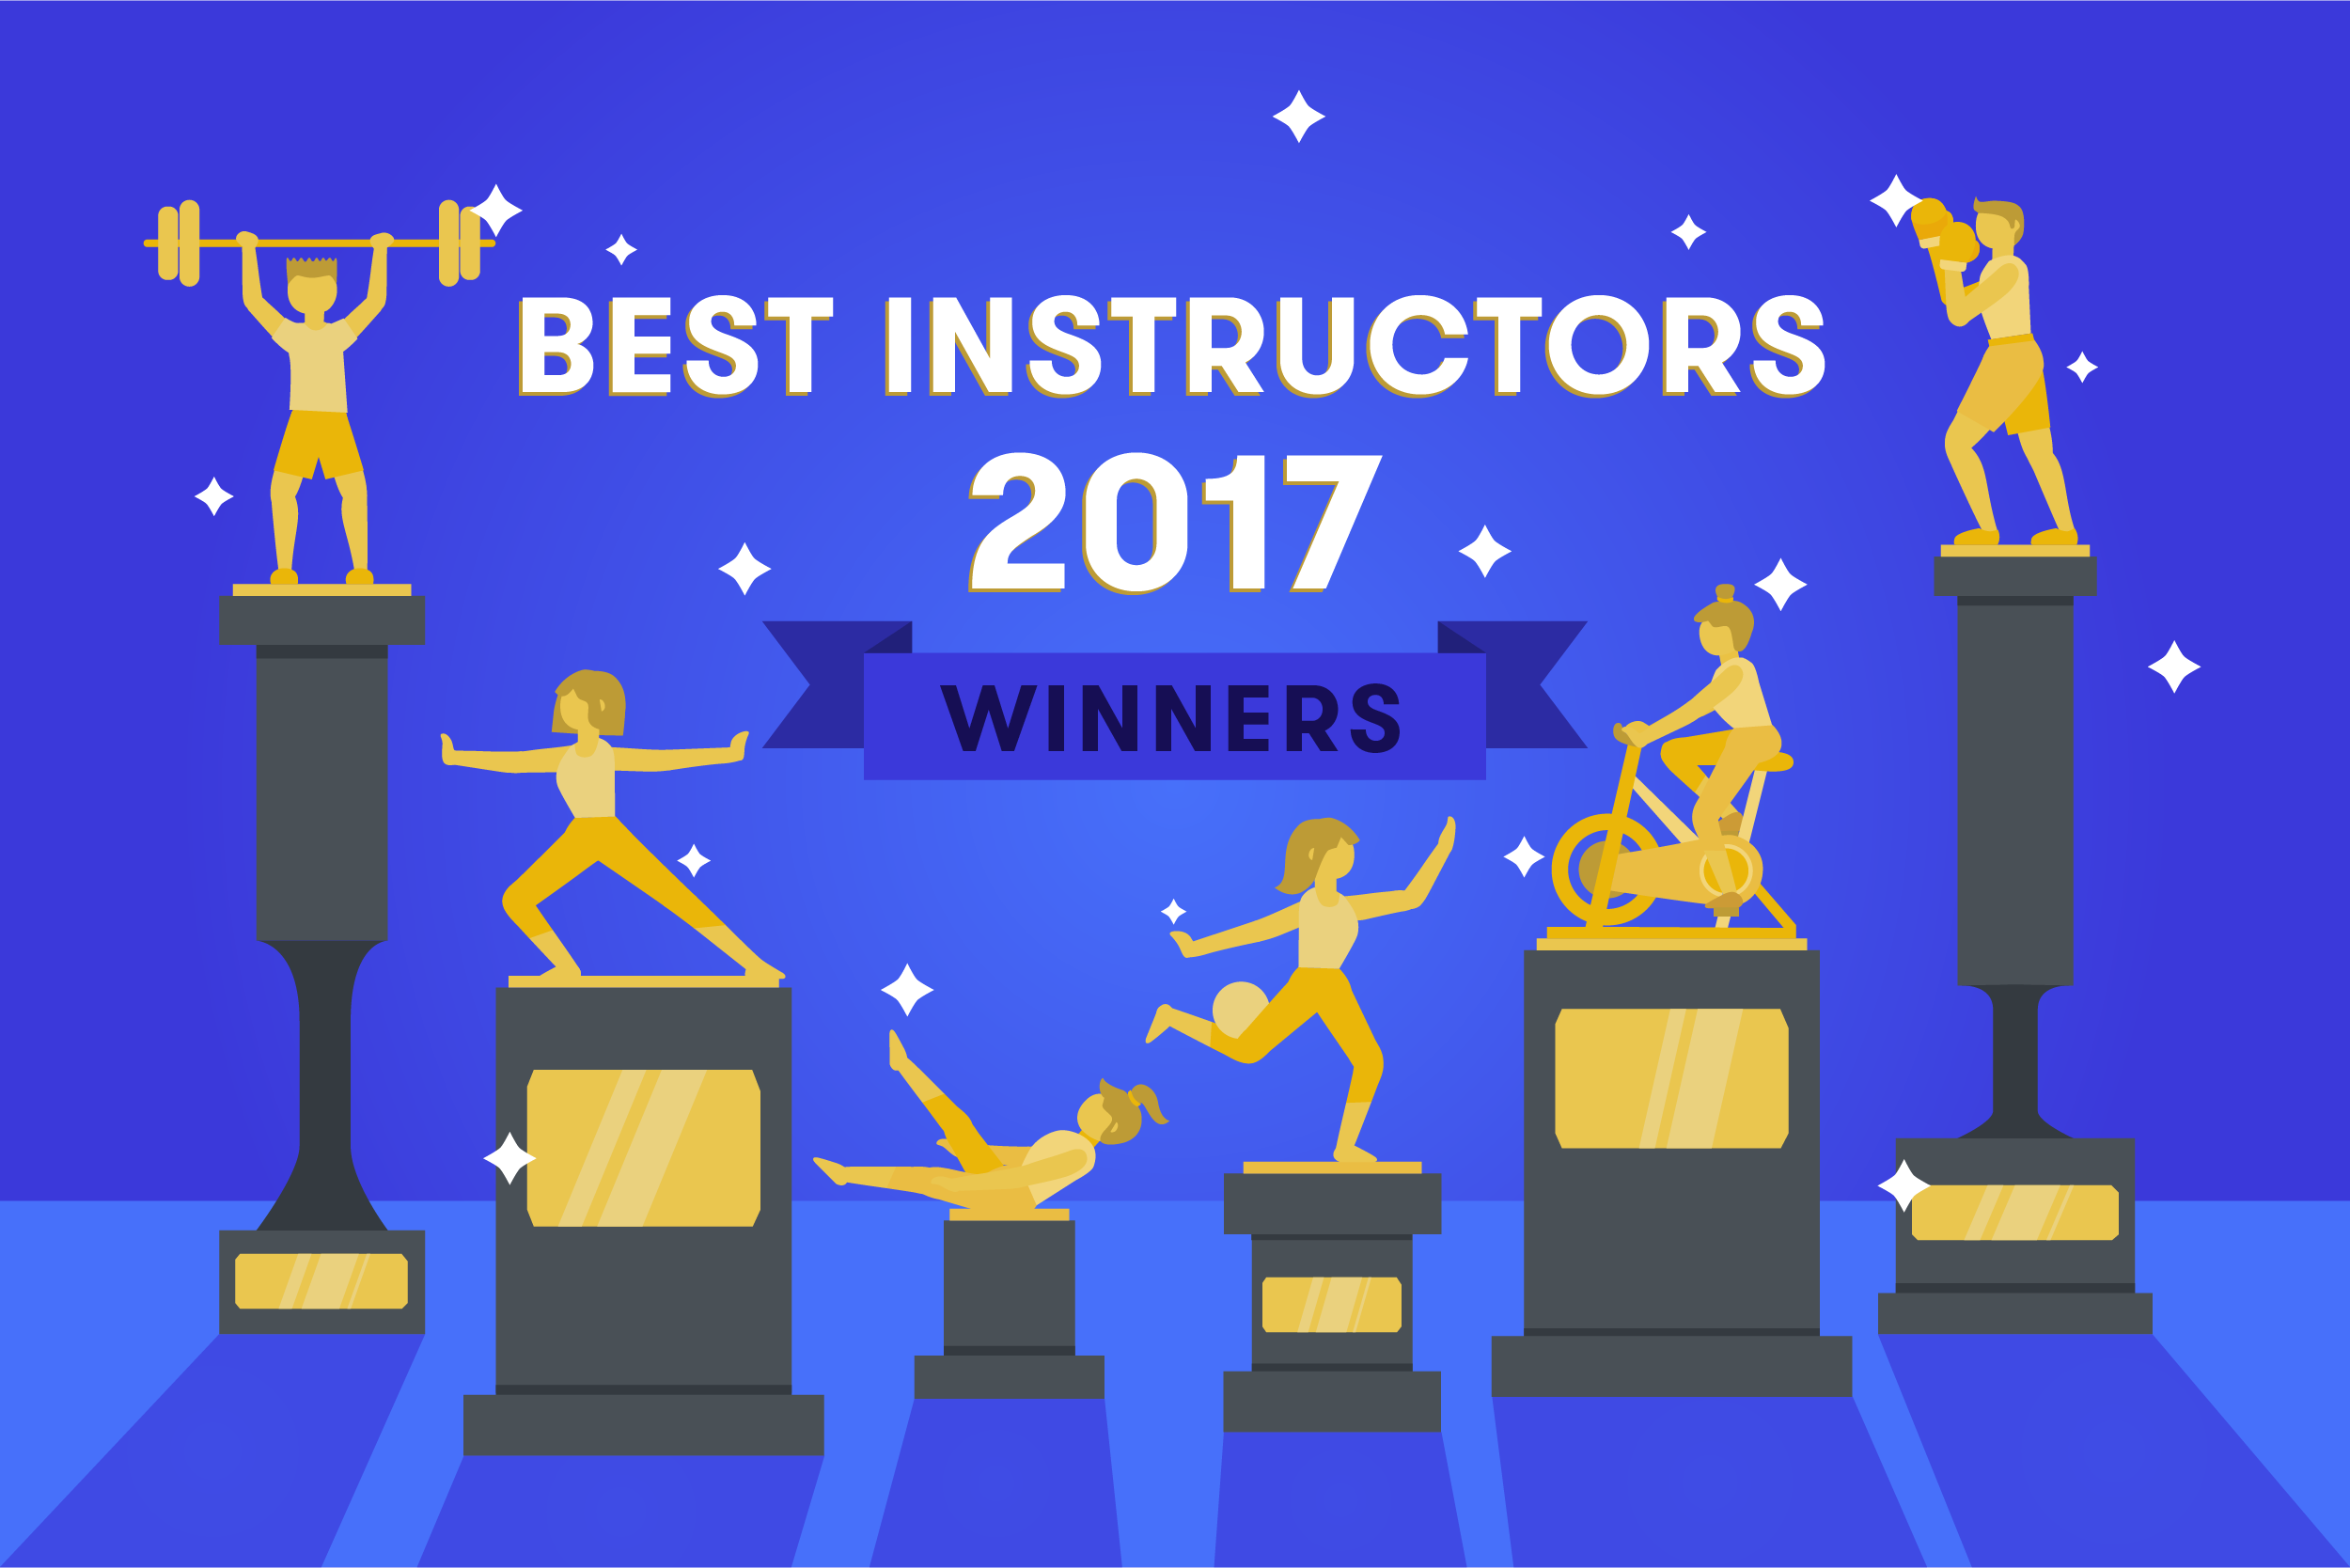 20180102_Instructor-of-the-Year_Winner-Announcement_V2_WINNERS-BLOG.png